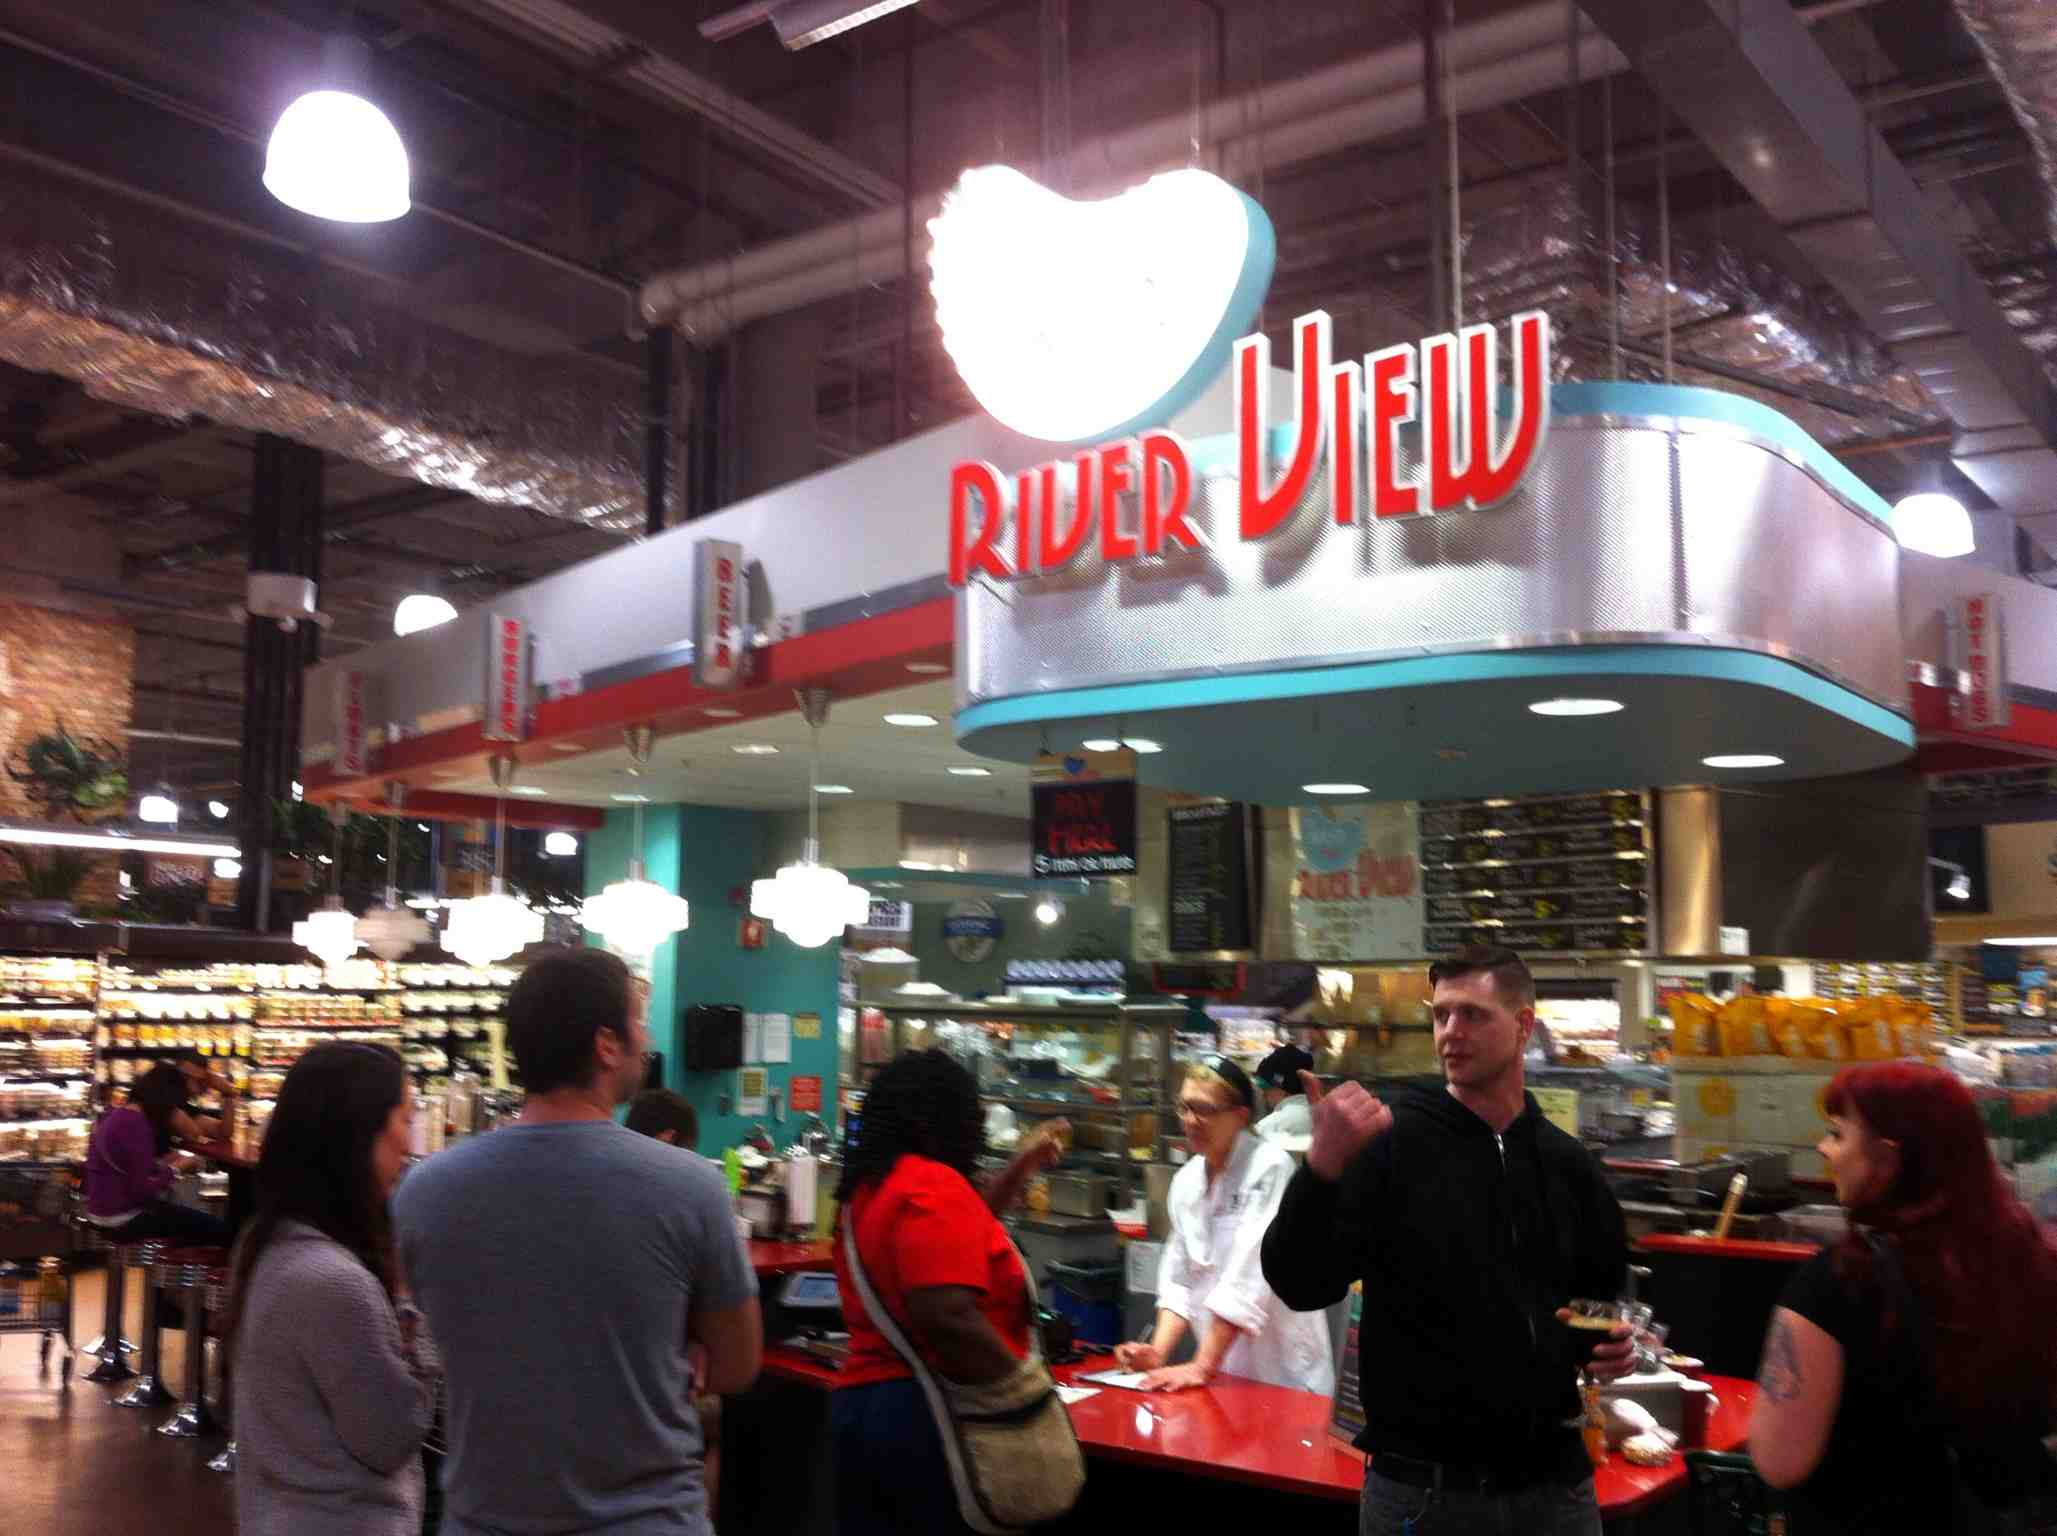 I found out this is the second largest Whole Foods in the chain.  It has several themed restaurants in the store including this '50s style diner.